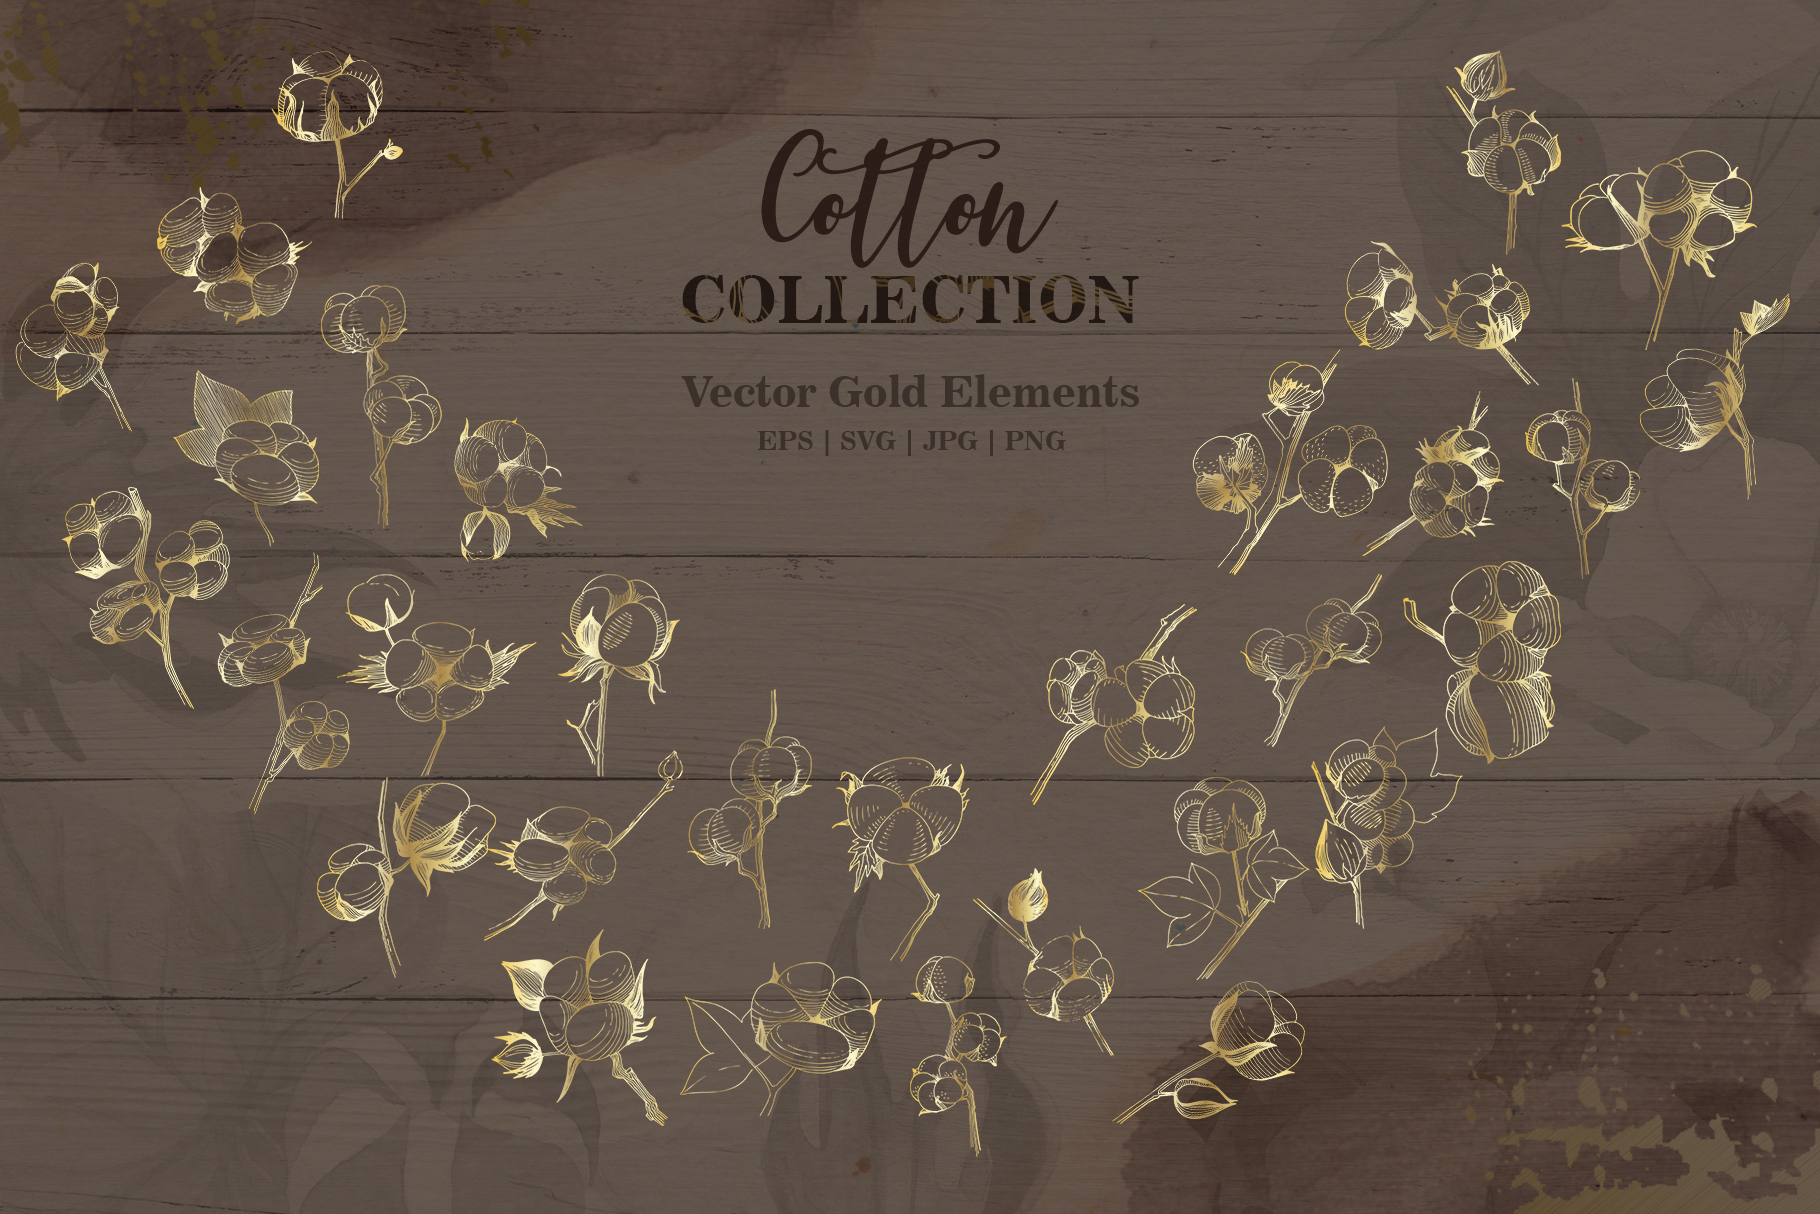 Cotton collection EPS, PNG, JPG, SVG set example image 6